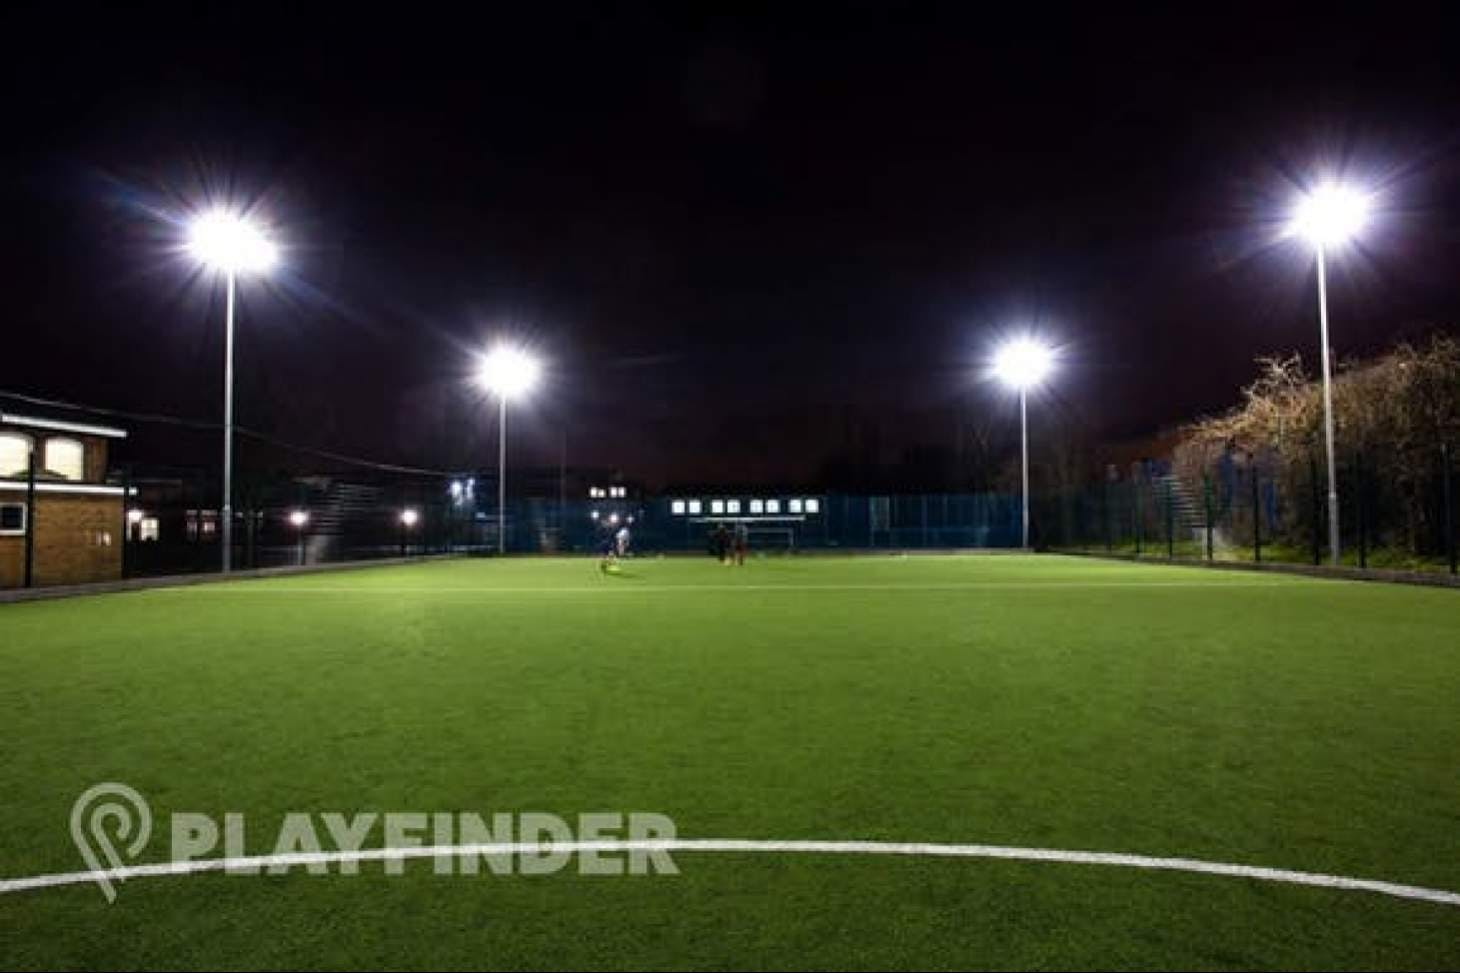 Phoenix White City - Football567.com 8 a side | 3G Astroturf football pitch